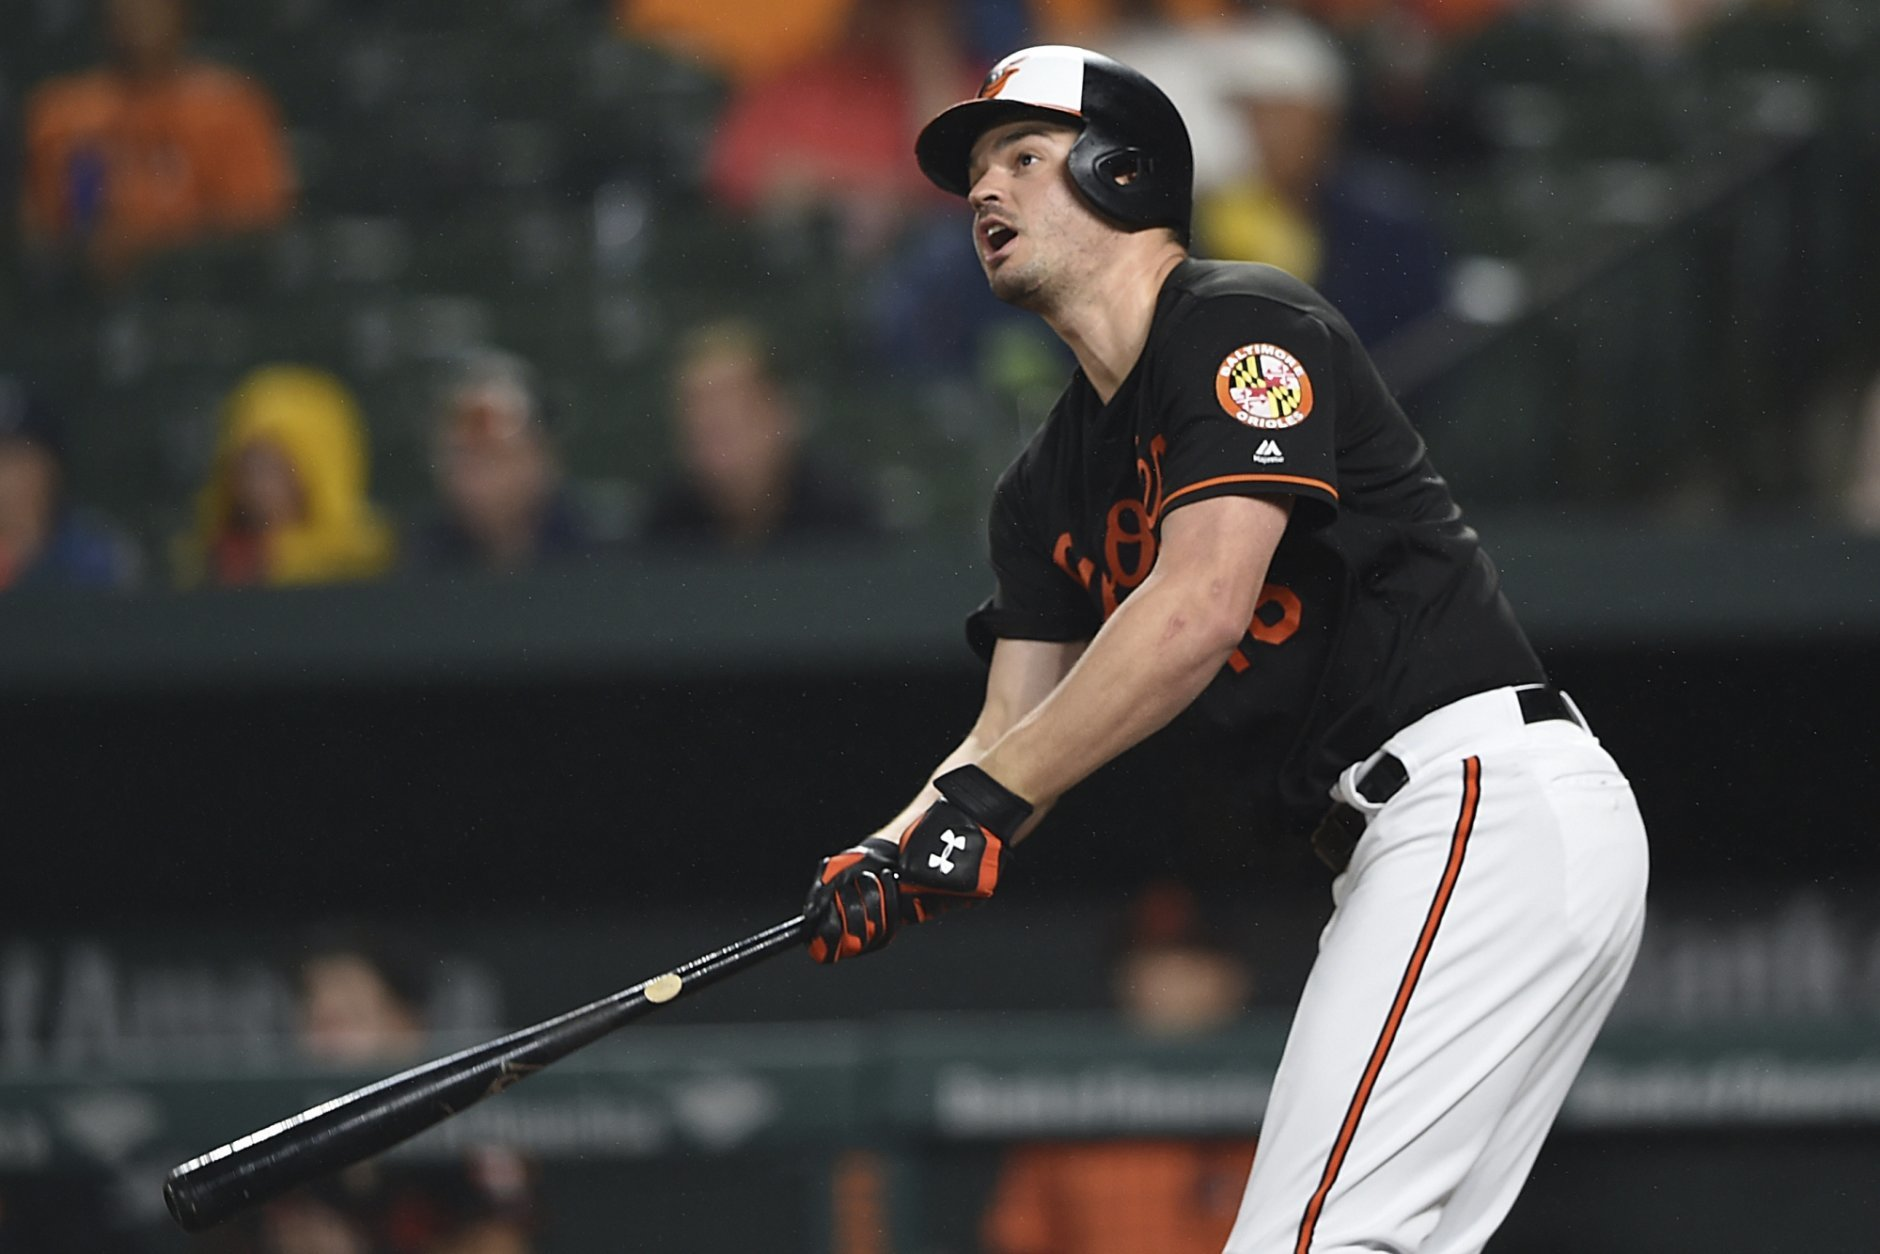 Baltimore Orioles' Trey Mancini follows through on a solo home run against the Chicago White Sox in the fourth inning of a baseball game, Friday, Sept. 14, 2018, in Baltimore. (AP Photo/Gail Burton)